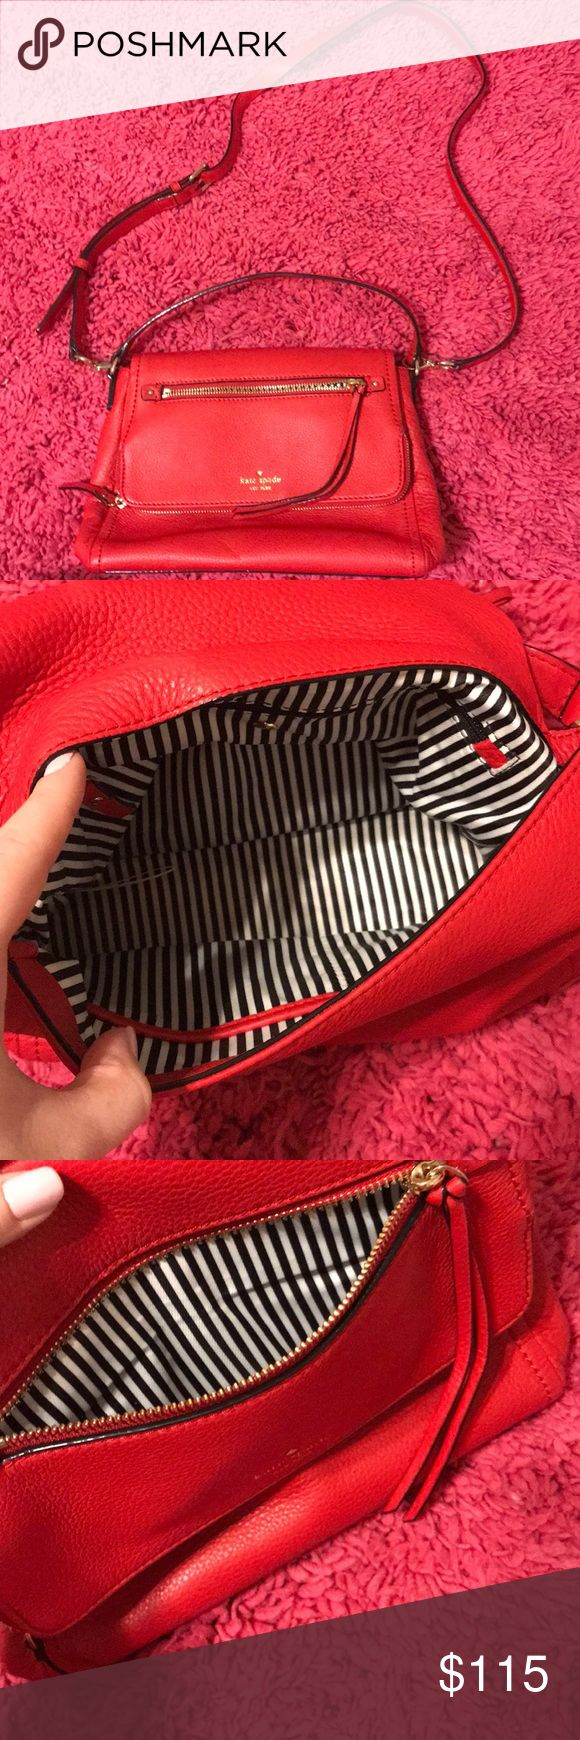 Kate spade red leather crossbody Brand new without actual price tags, but the tag is still attached • 100% authentic, beautiful quality bag. Red leather exterior w black and white striped interior w/Kate spade logo/symbol. Lots of zippers & pockets. Can be worn crossbody or carried. Thanks for stopping by my closet! 💗 kate spade Bags